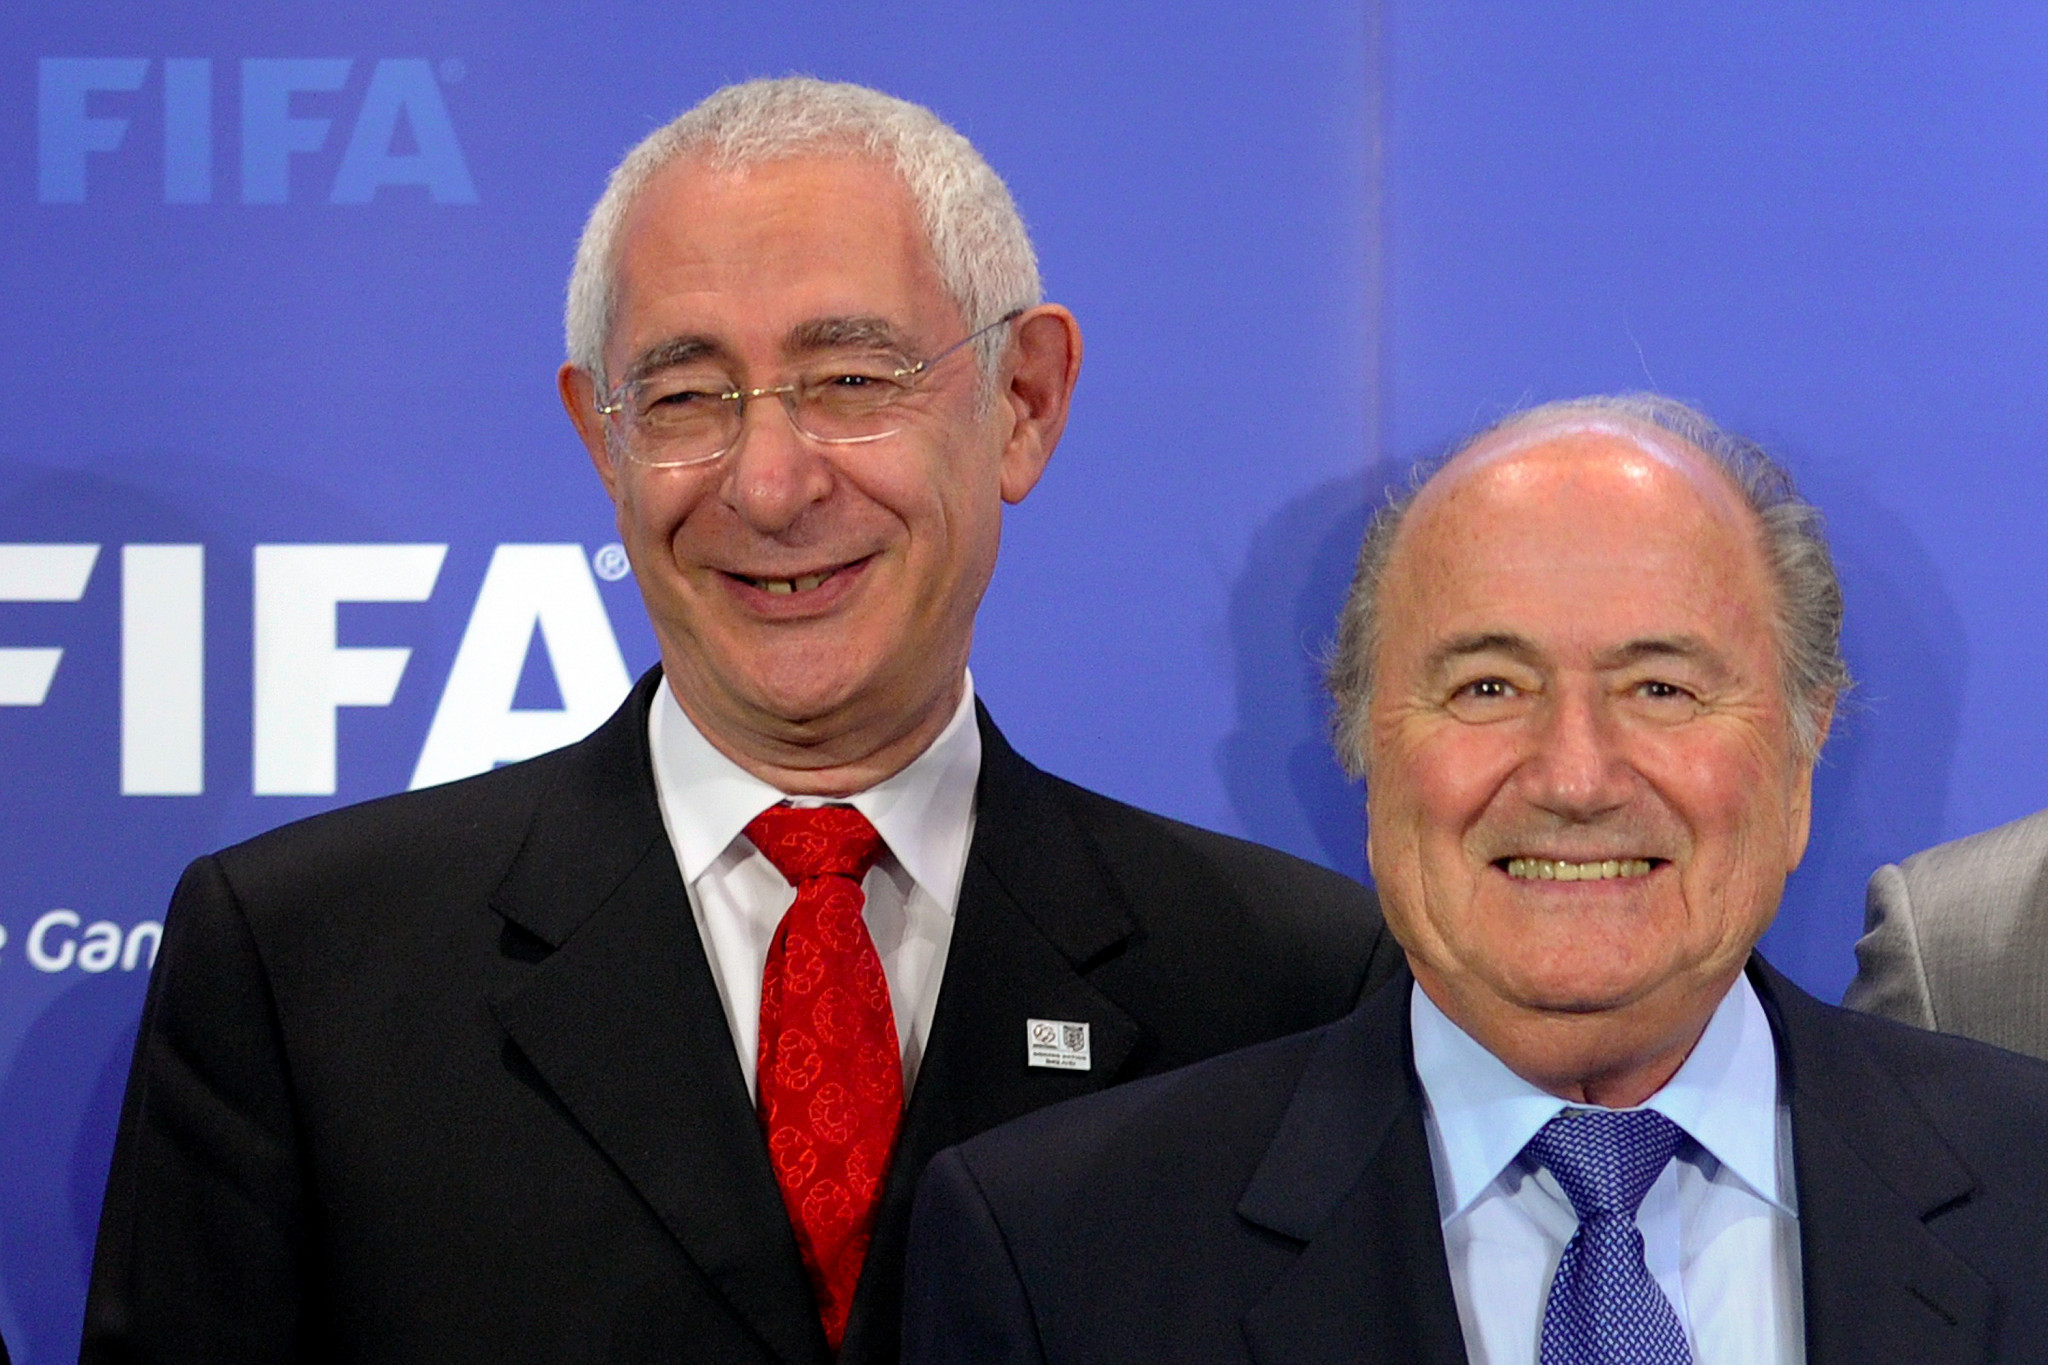 England's failed bid for 2018 FIFA World Cup was hacked, claims former FA chairman